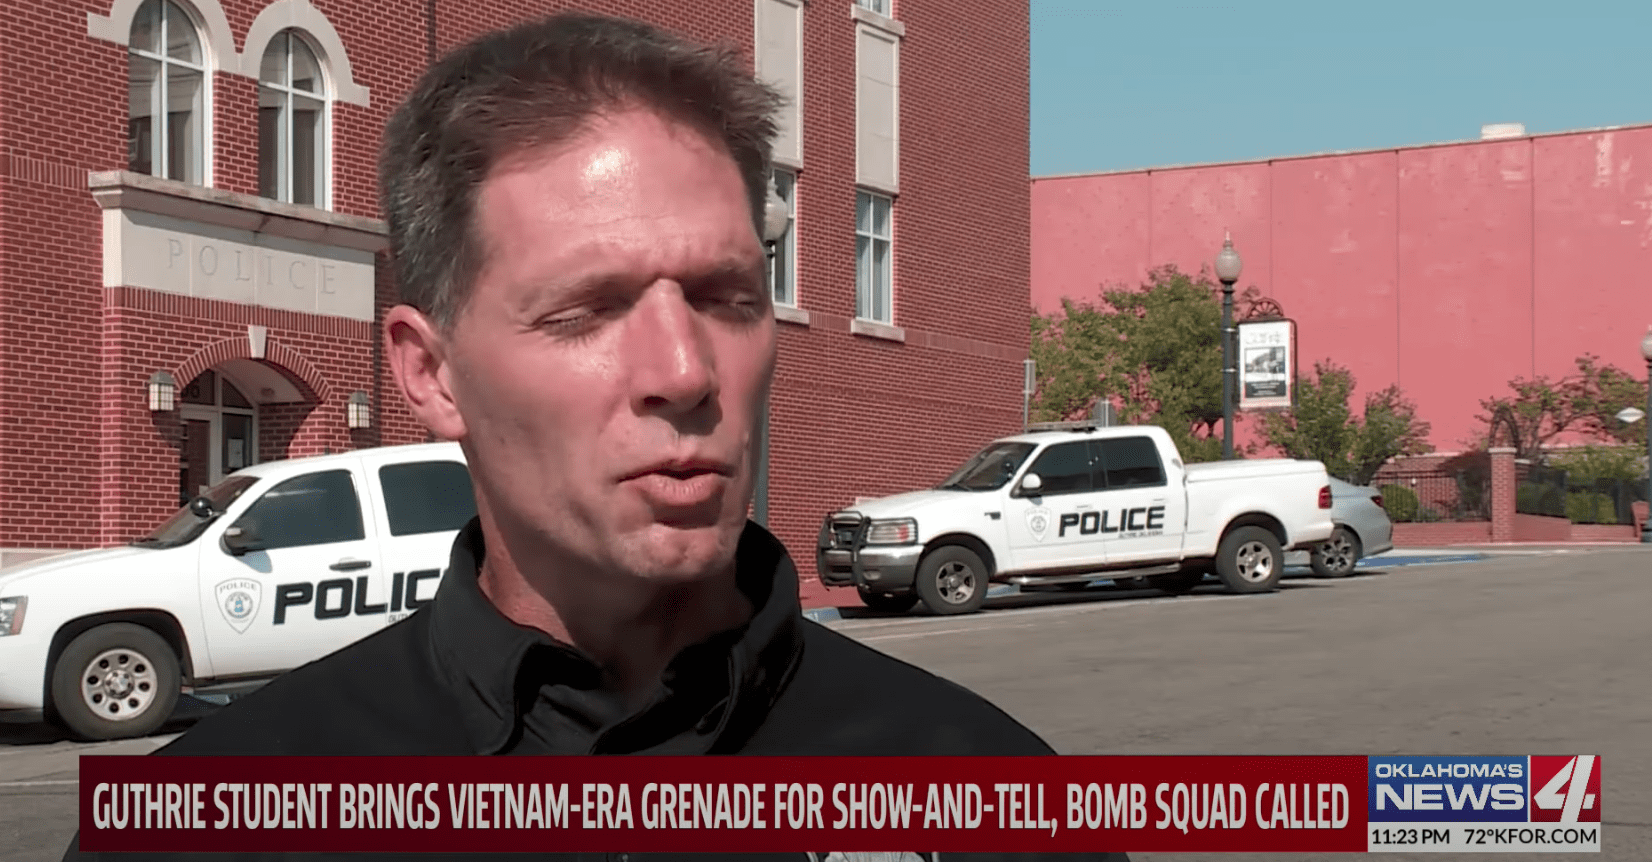 Officials speak to news reporters about the dangerous military device that was brought to school by a pupil   Photo: Youtube/KFOR Oklahoma's News 4